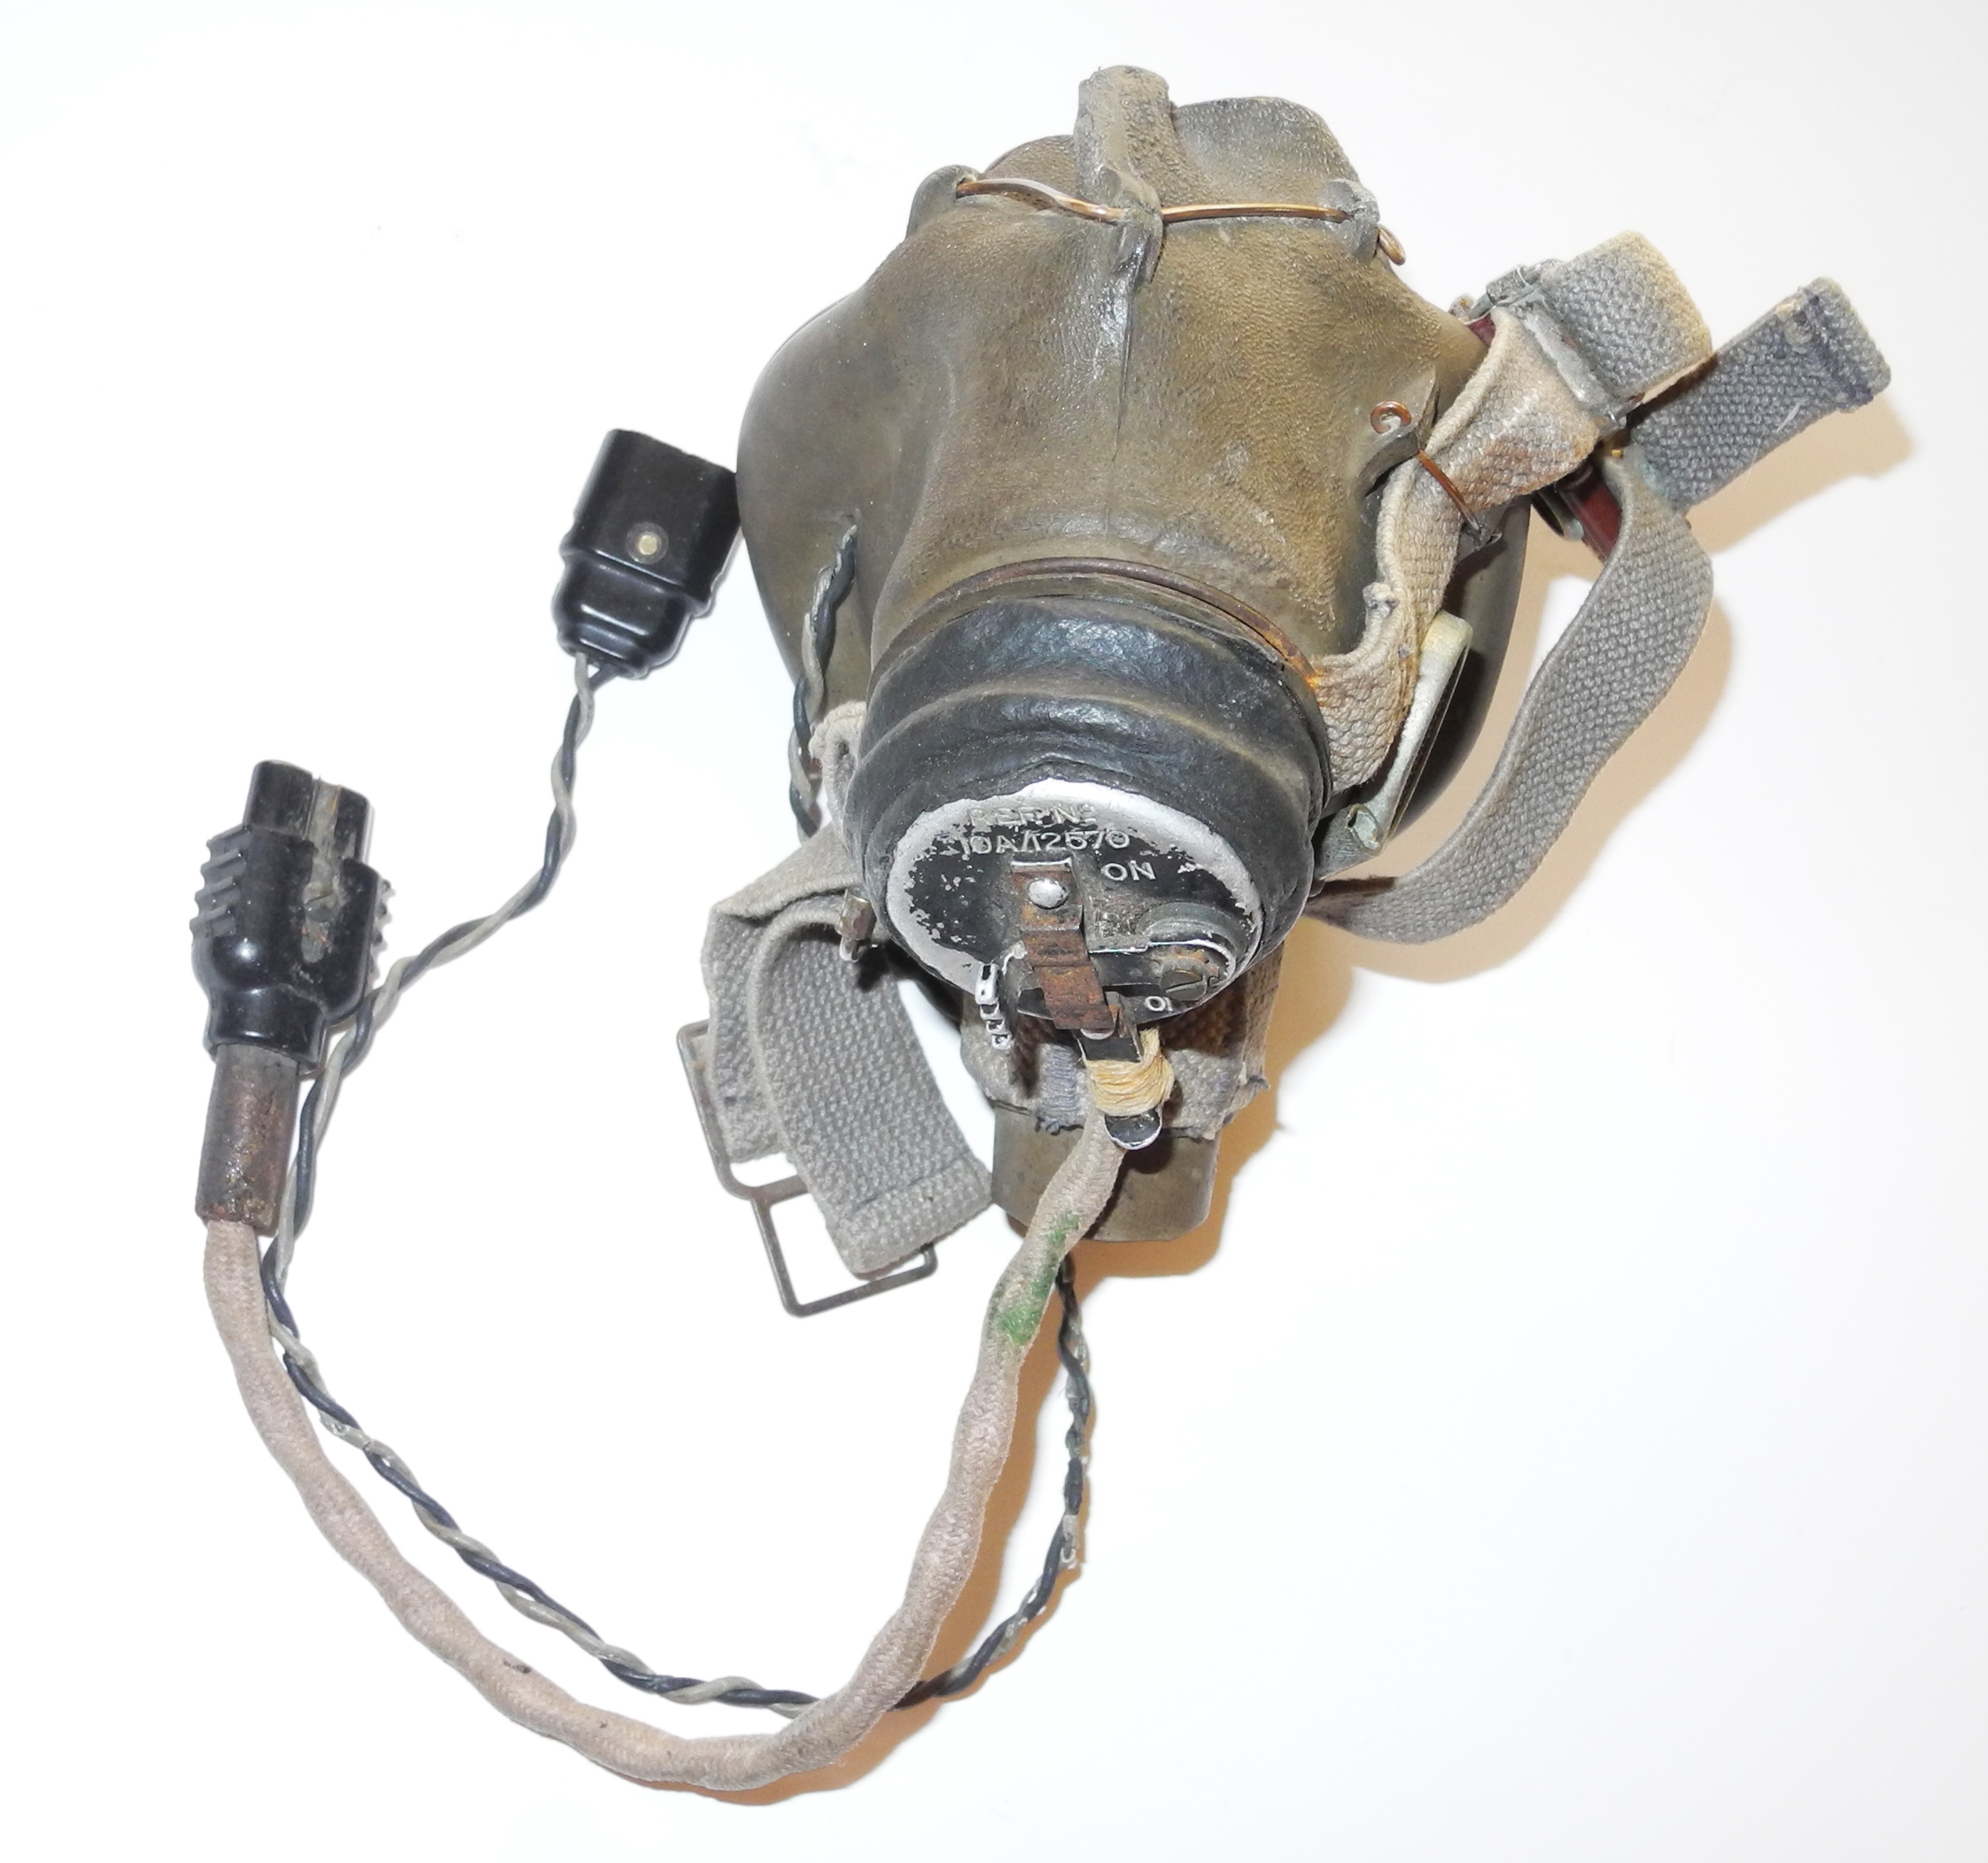 RAF Type G oxygen mask with microphone heater